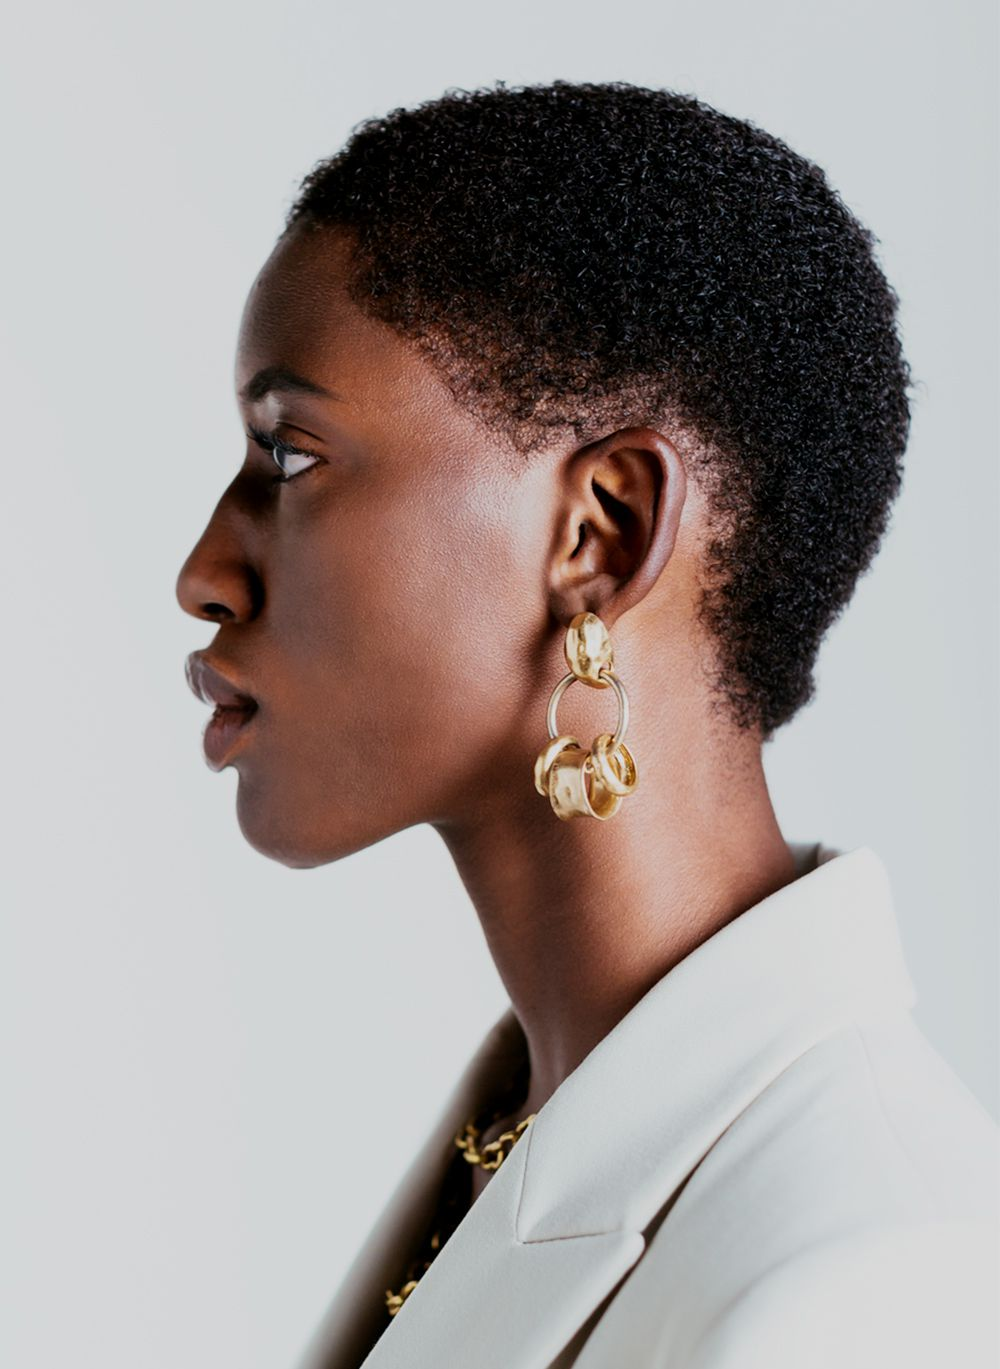 profile of person with chunky gold earrings